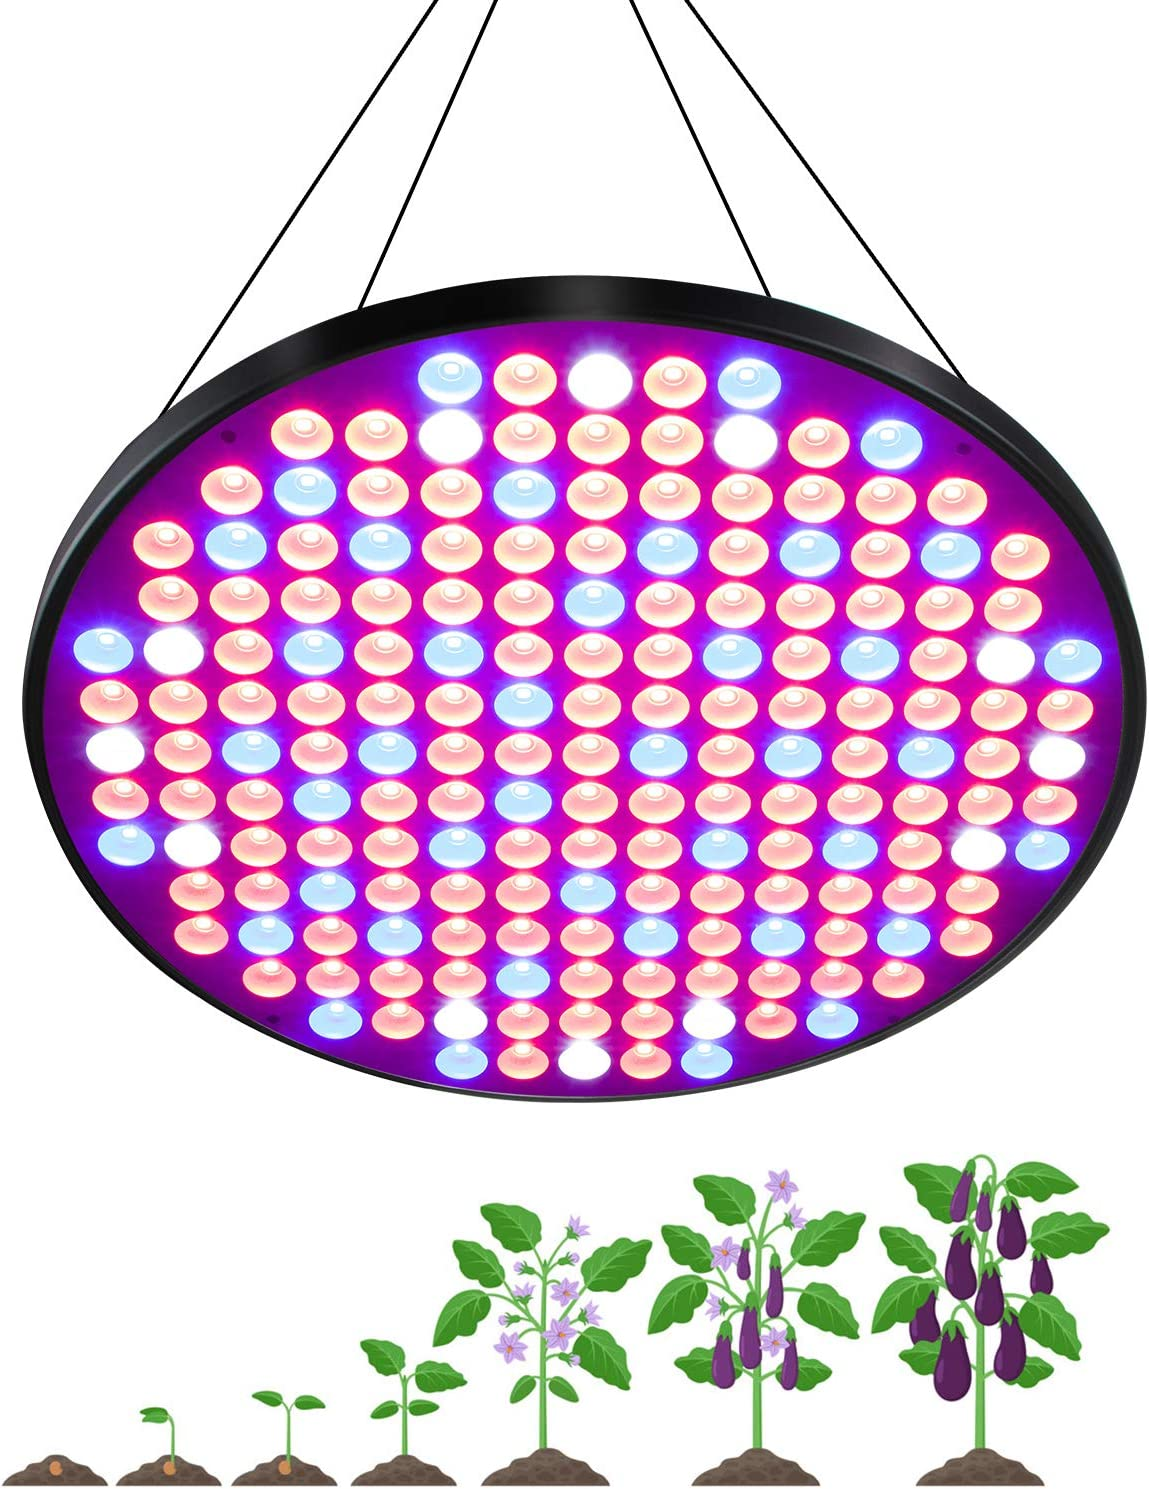 50W UFO LED Grow Lights, FullightGrow Ultra-Thin & High-Efficiency Red Blue Full Spectrum Plants Light for Indoor Growing, Seedling, Vegetative, and Flowering, 2 Years Warranty